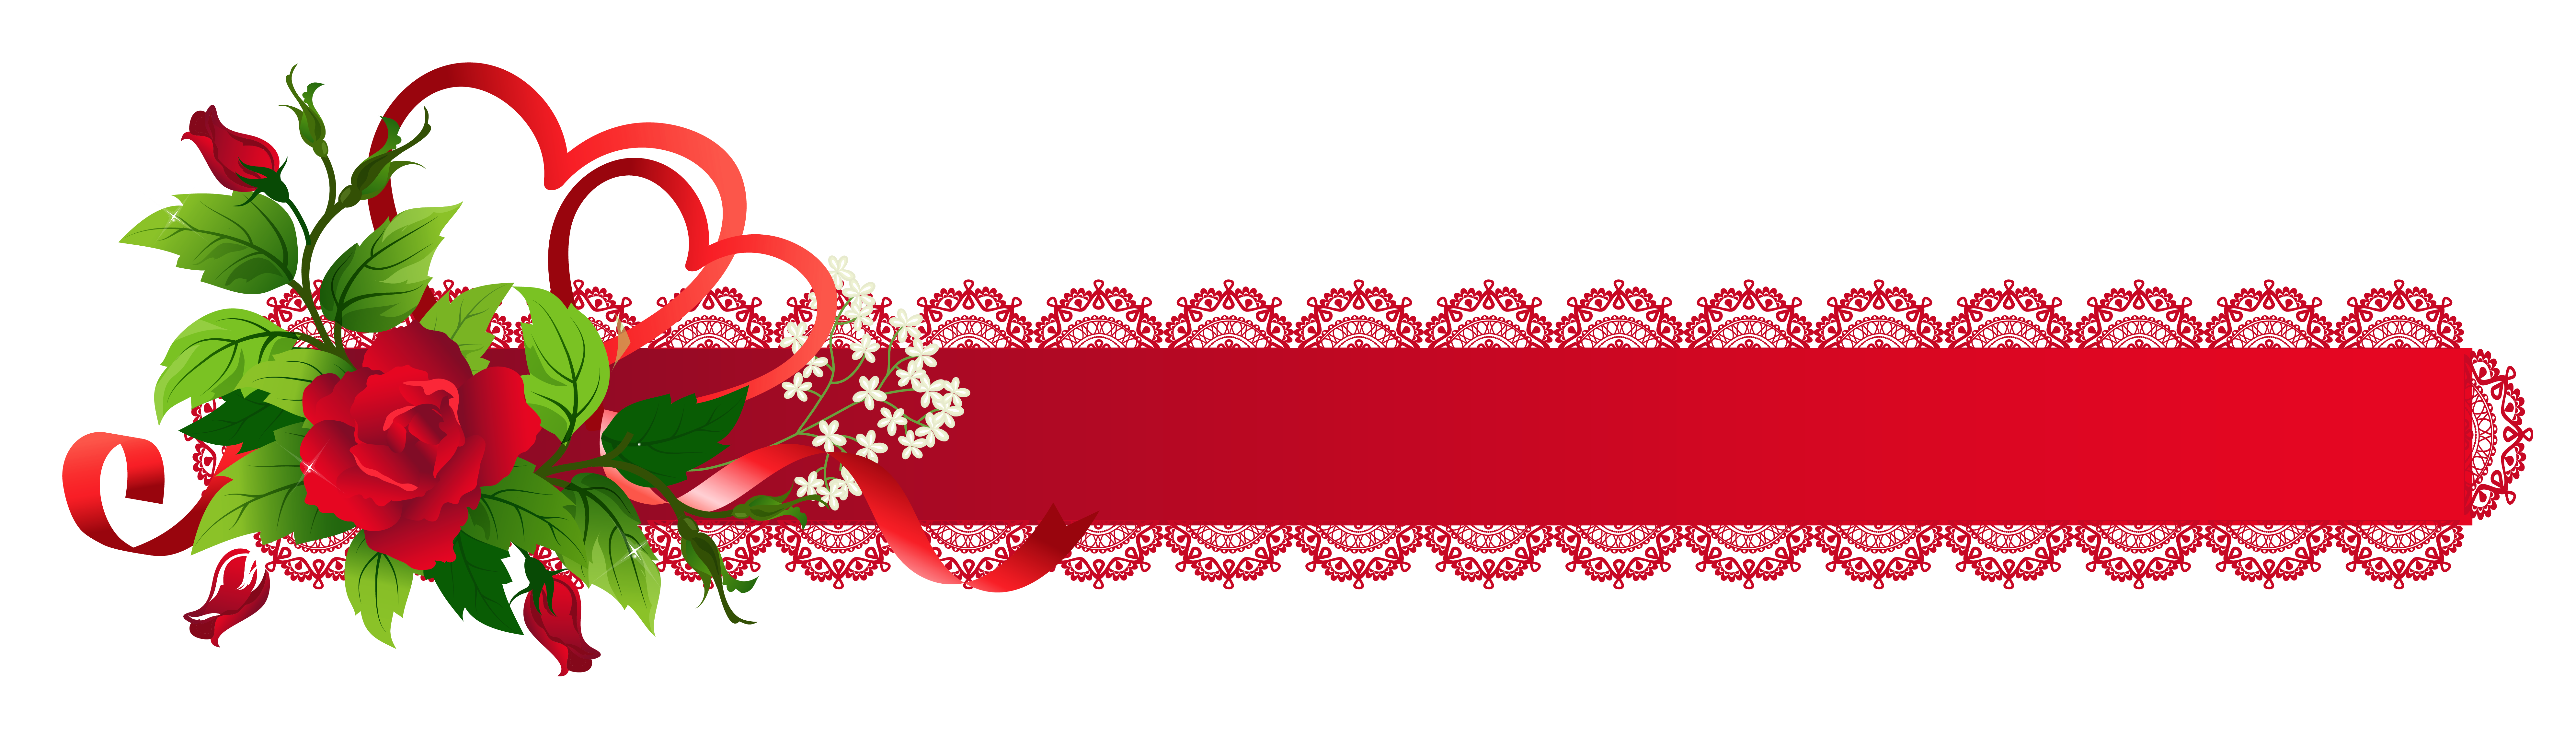 Rose banner png. Red deco ribbon with